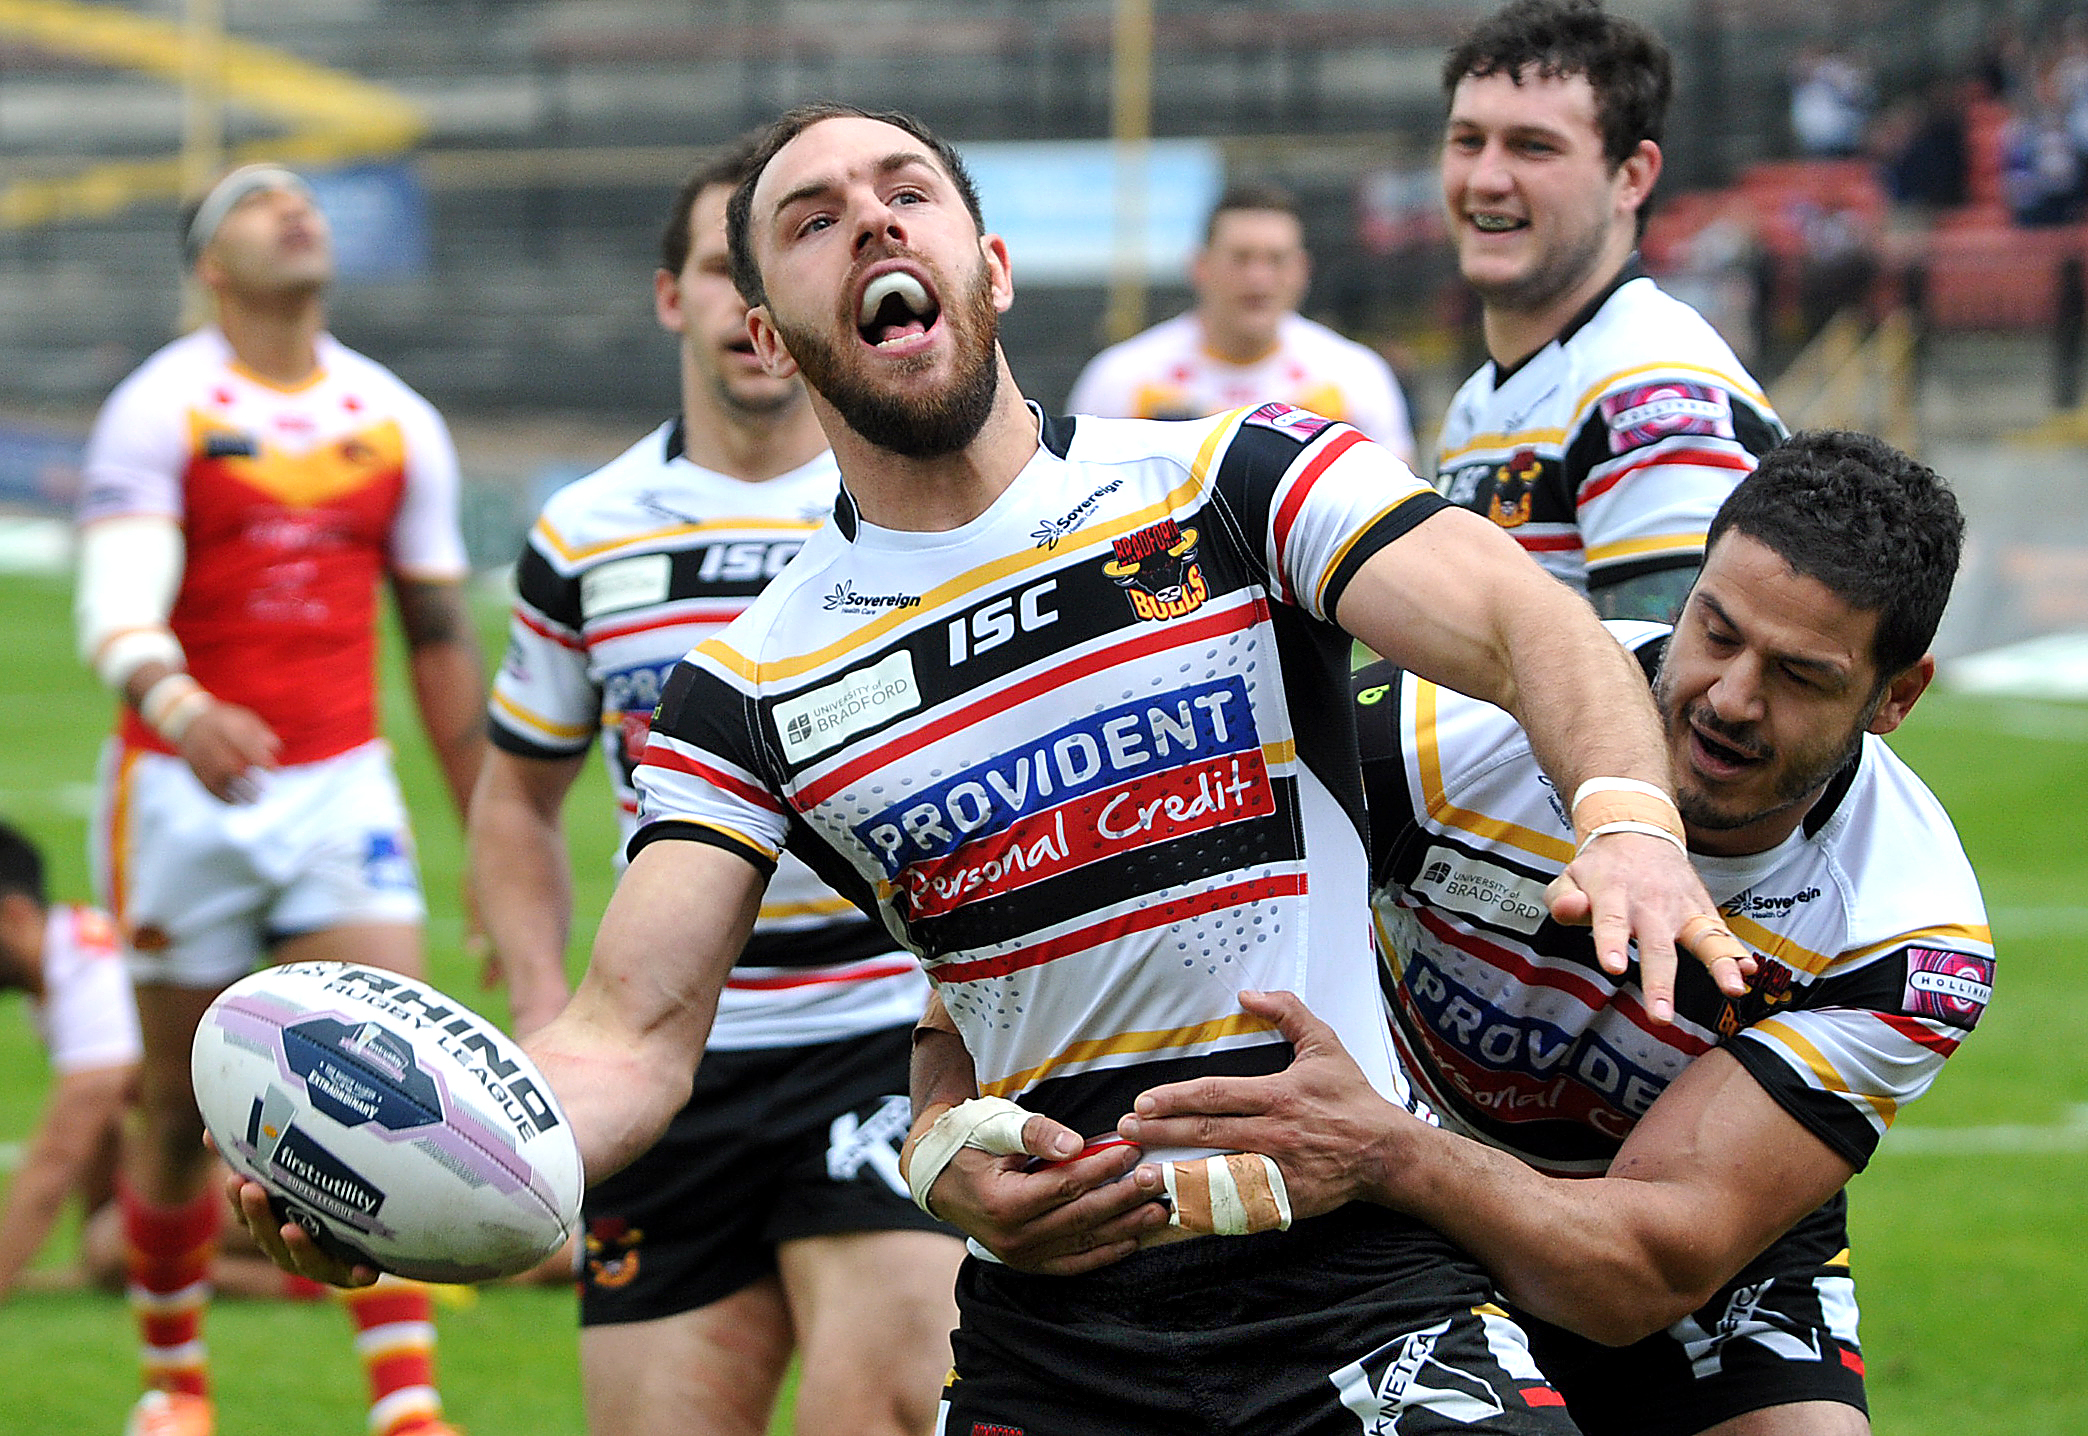 BAWL BOY! Luke Gale shows his delight after scoring in the win over Catalan Dragons